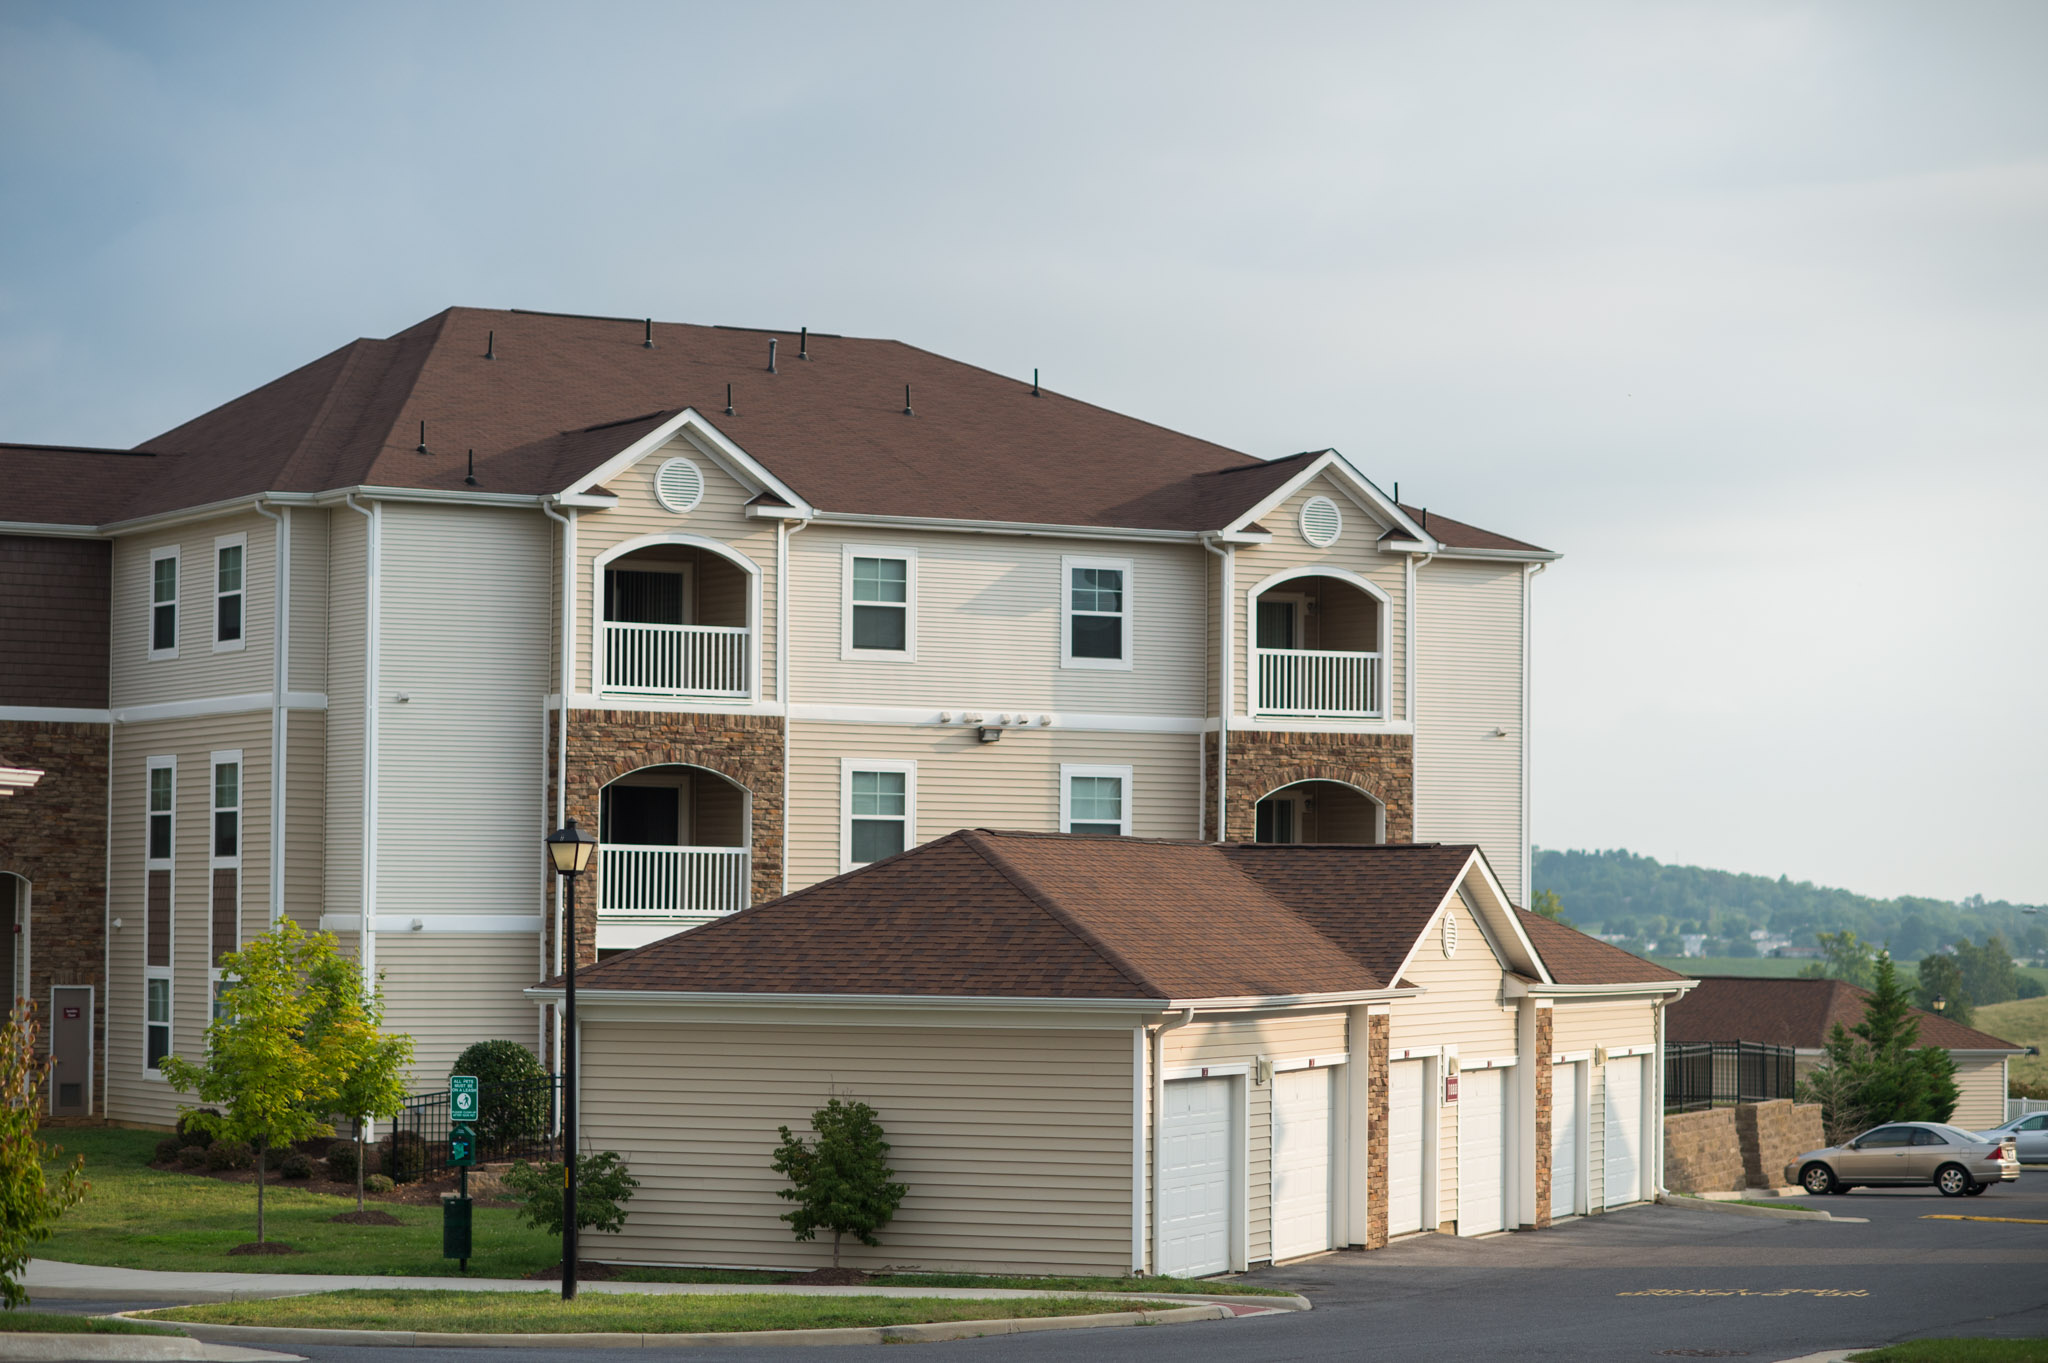 North 38 Exteriors for Web-1057.jpg